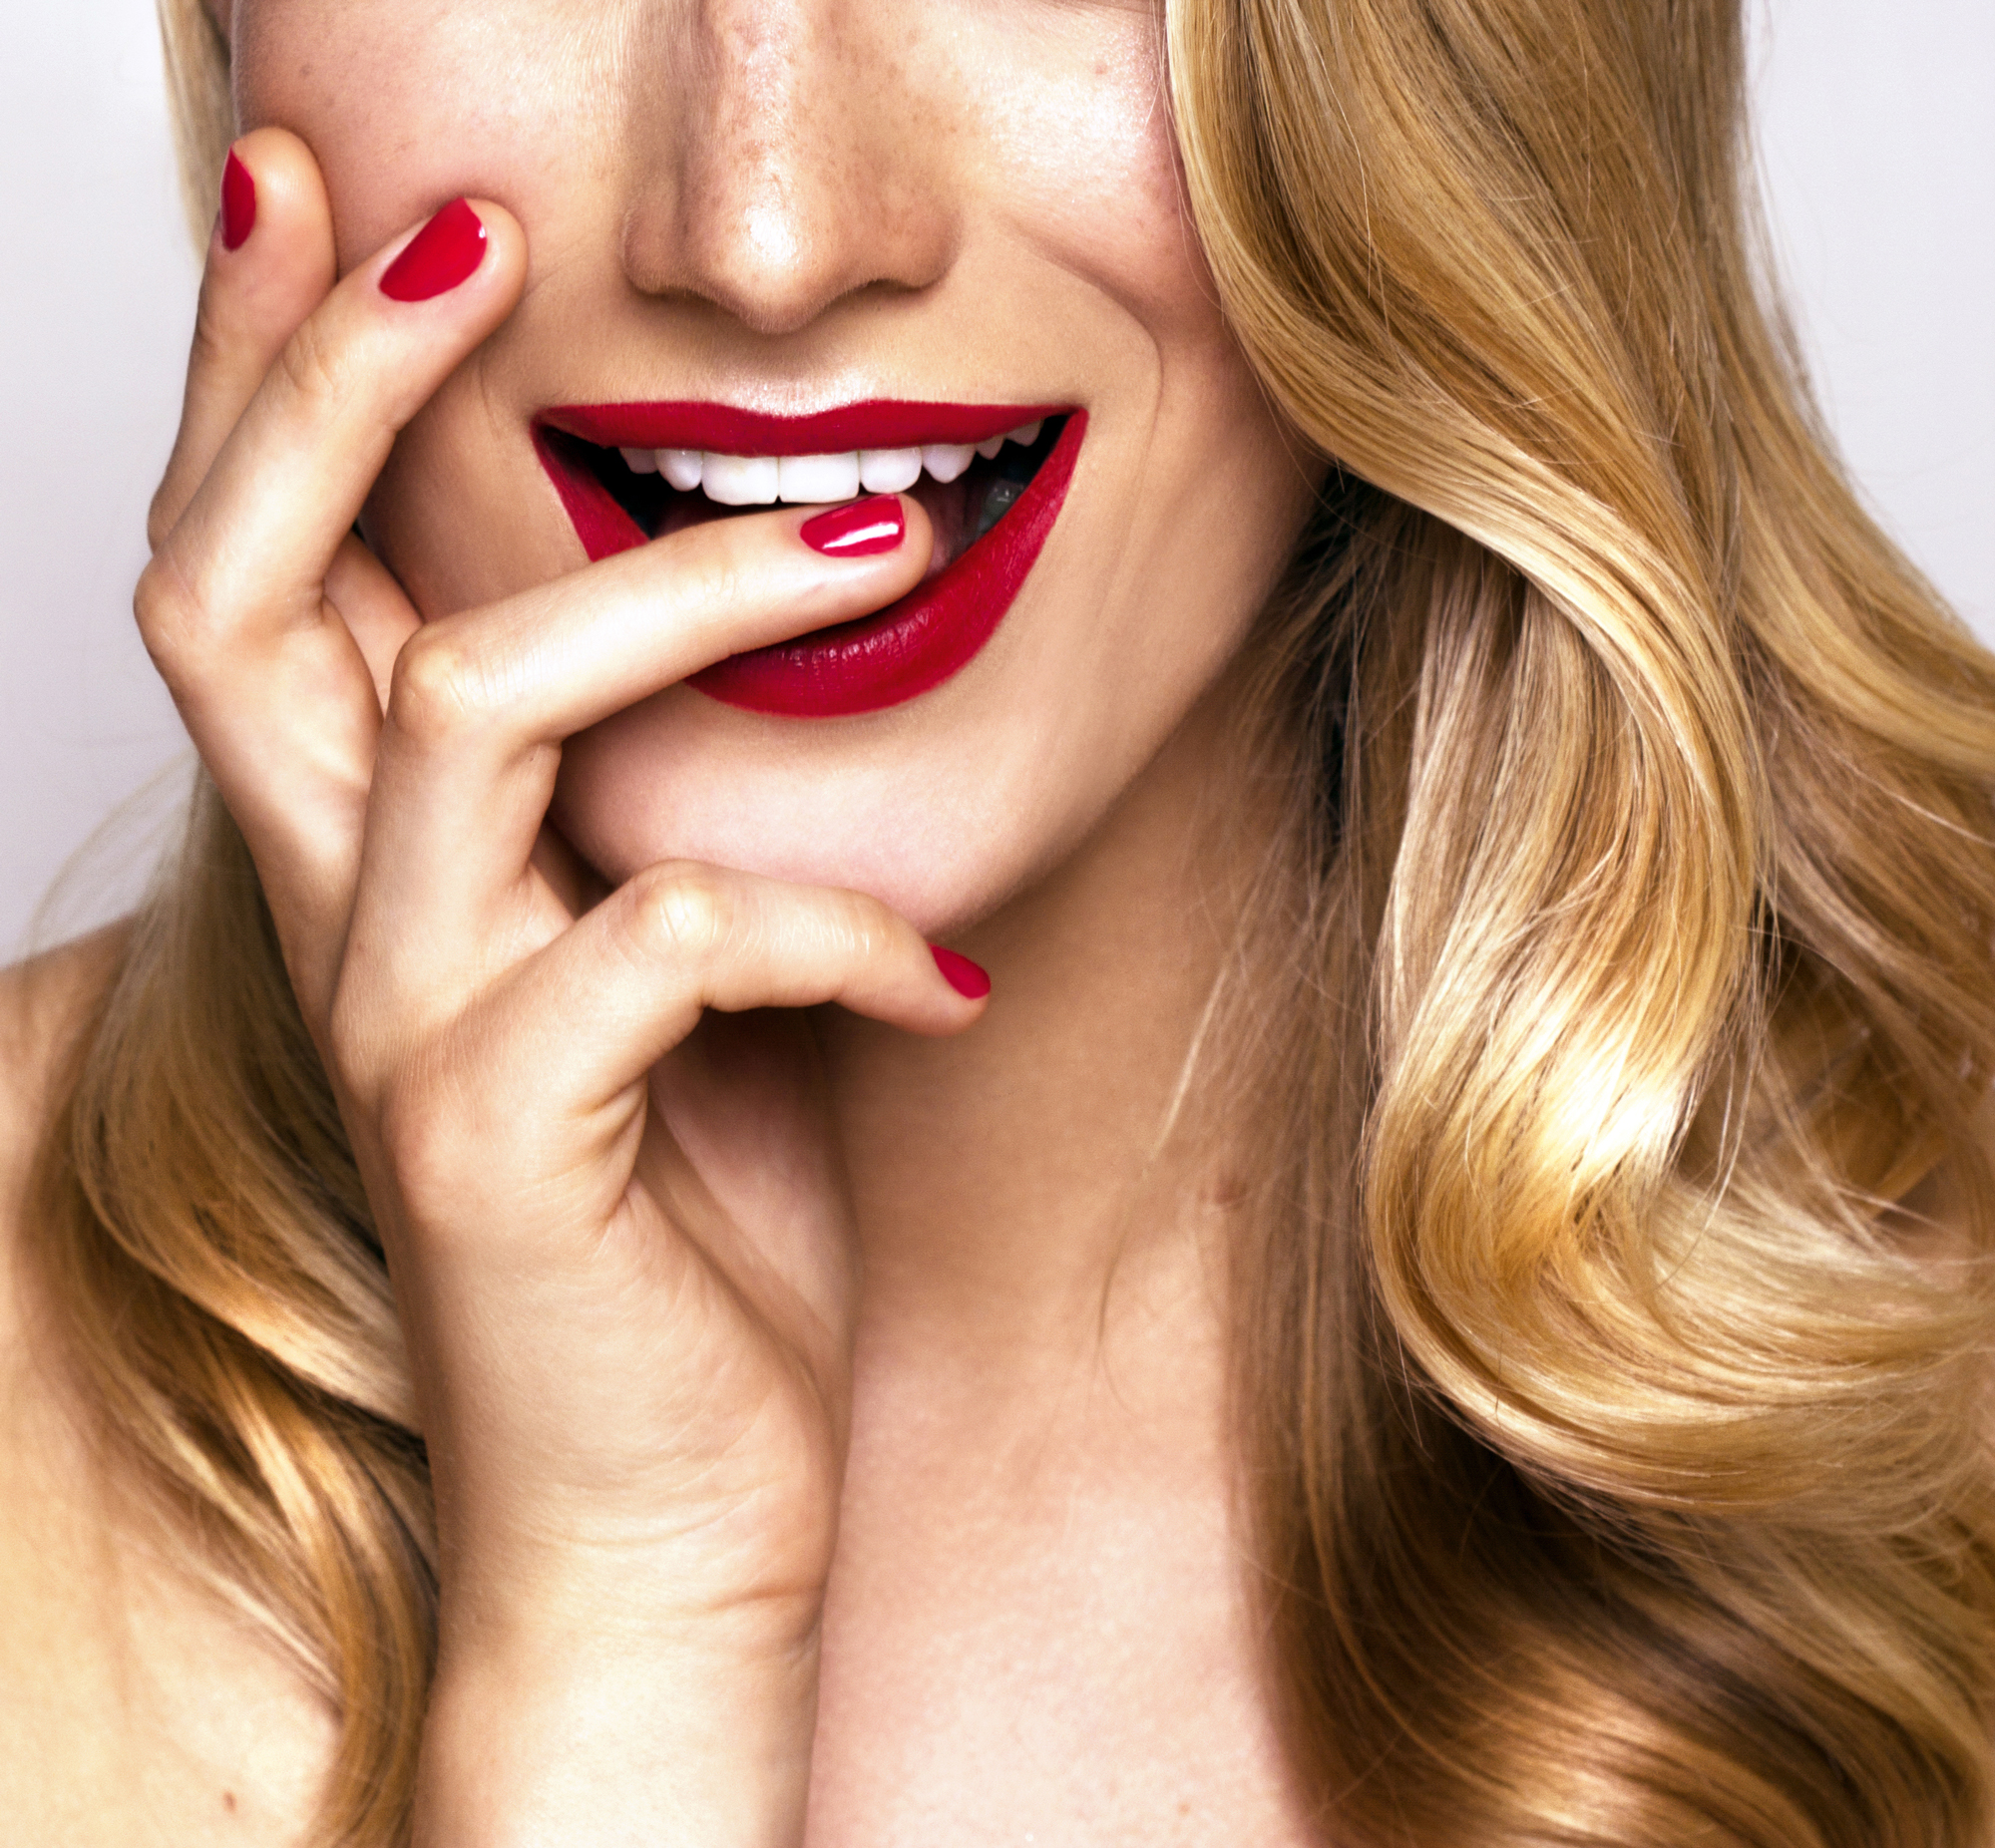 This Genius Product Will Help You Kick Your Nail-Biting Habit